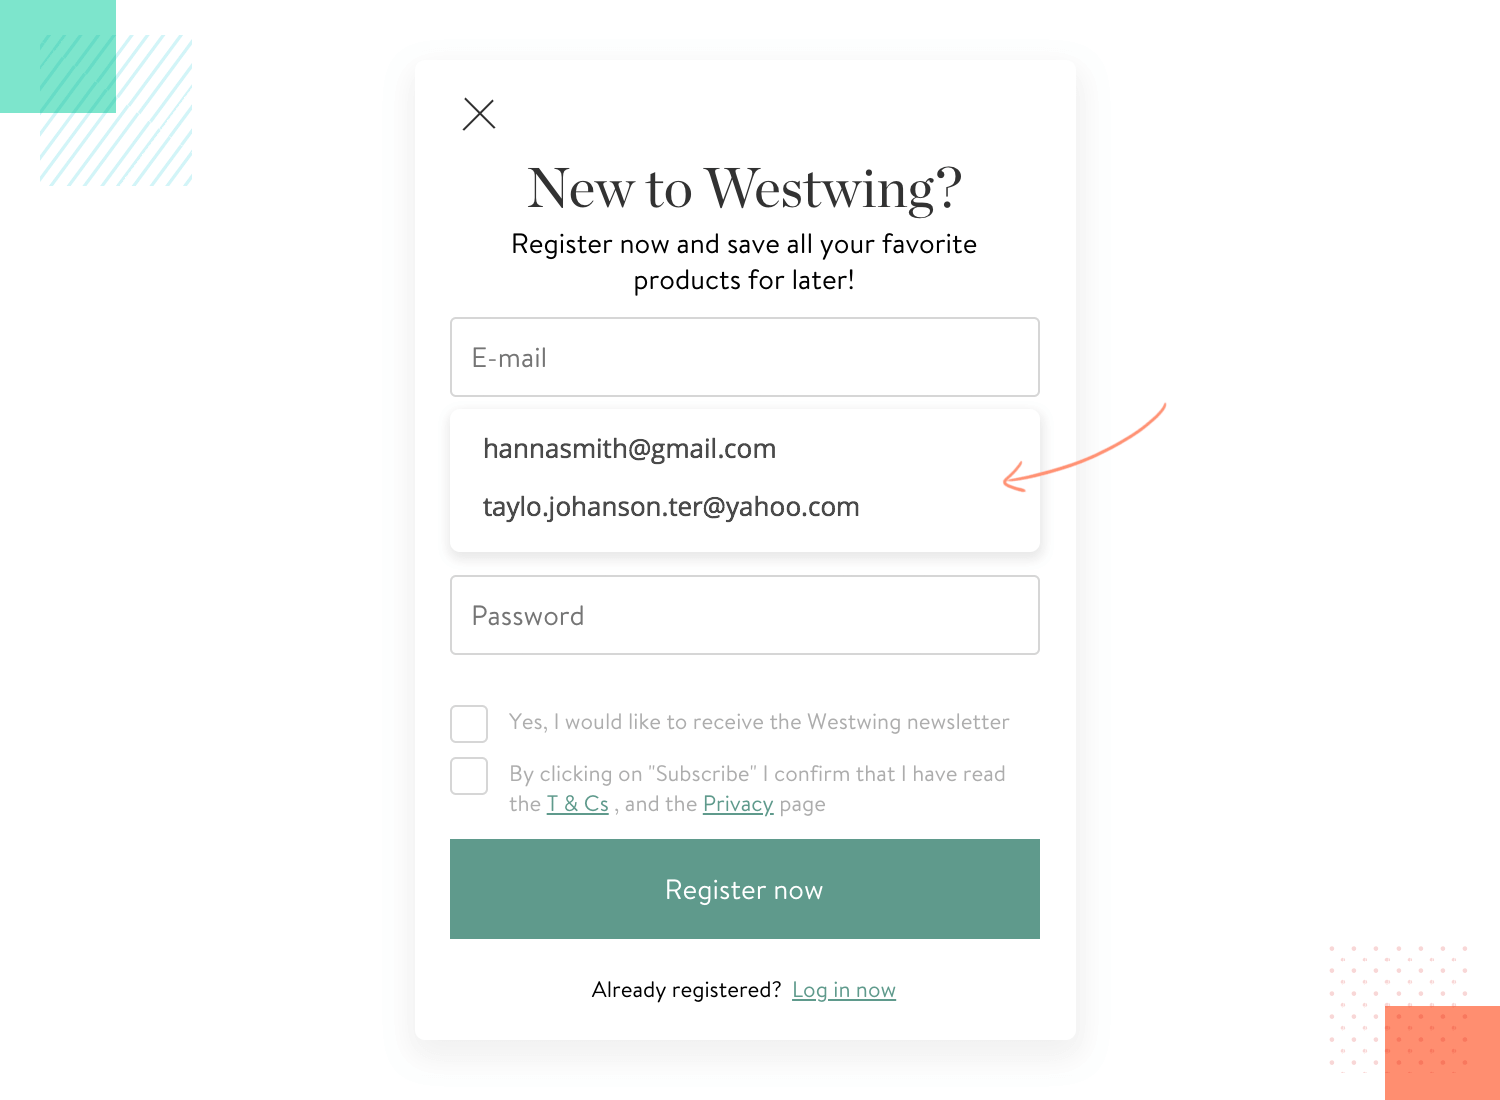 example of great form design by westwting